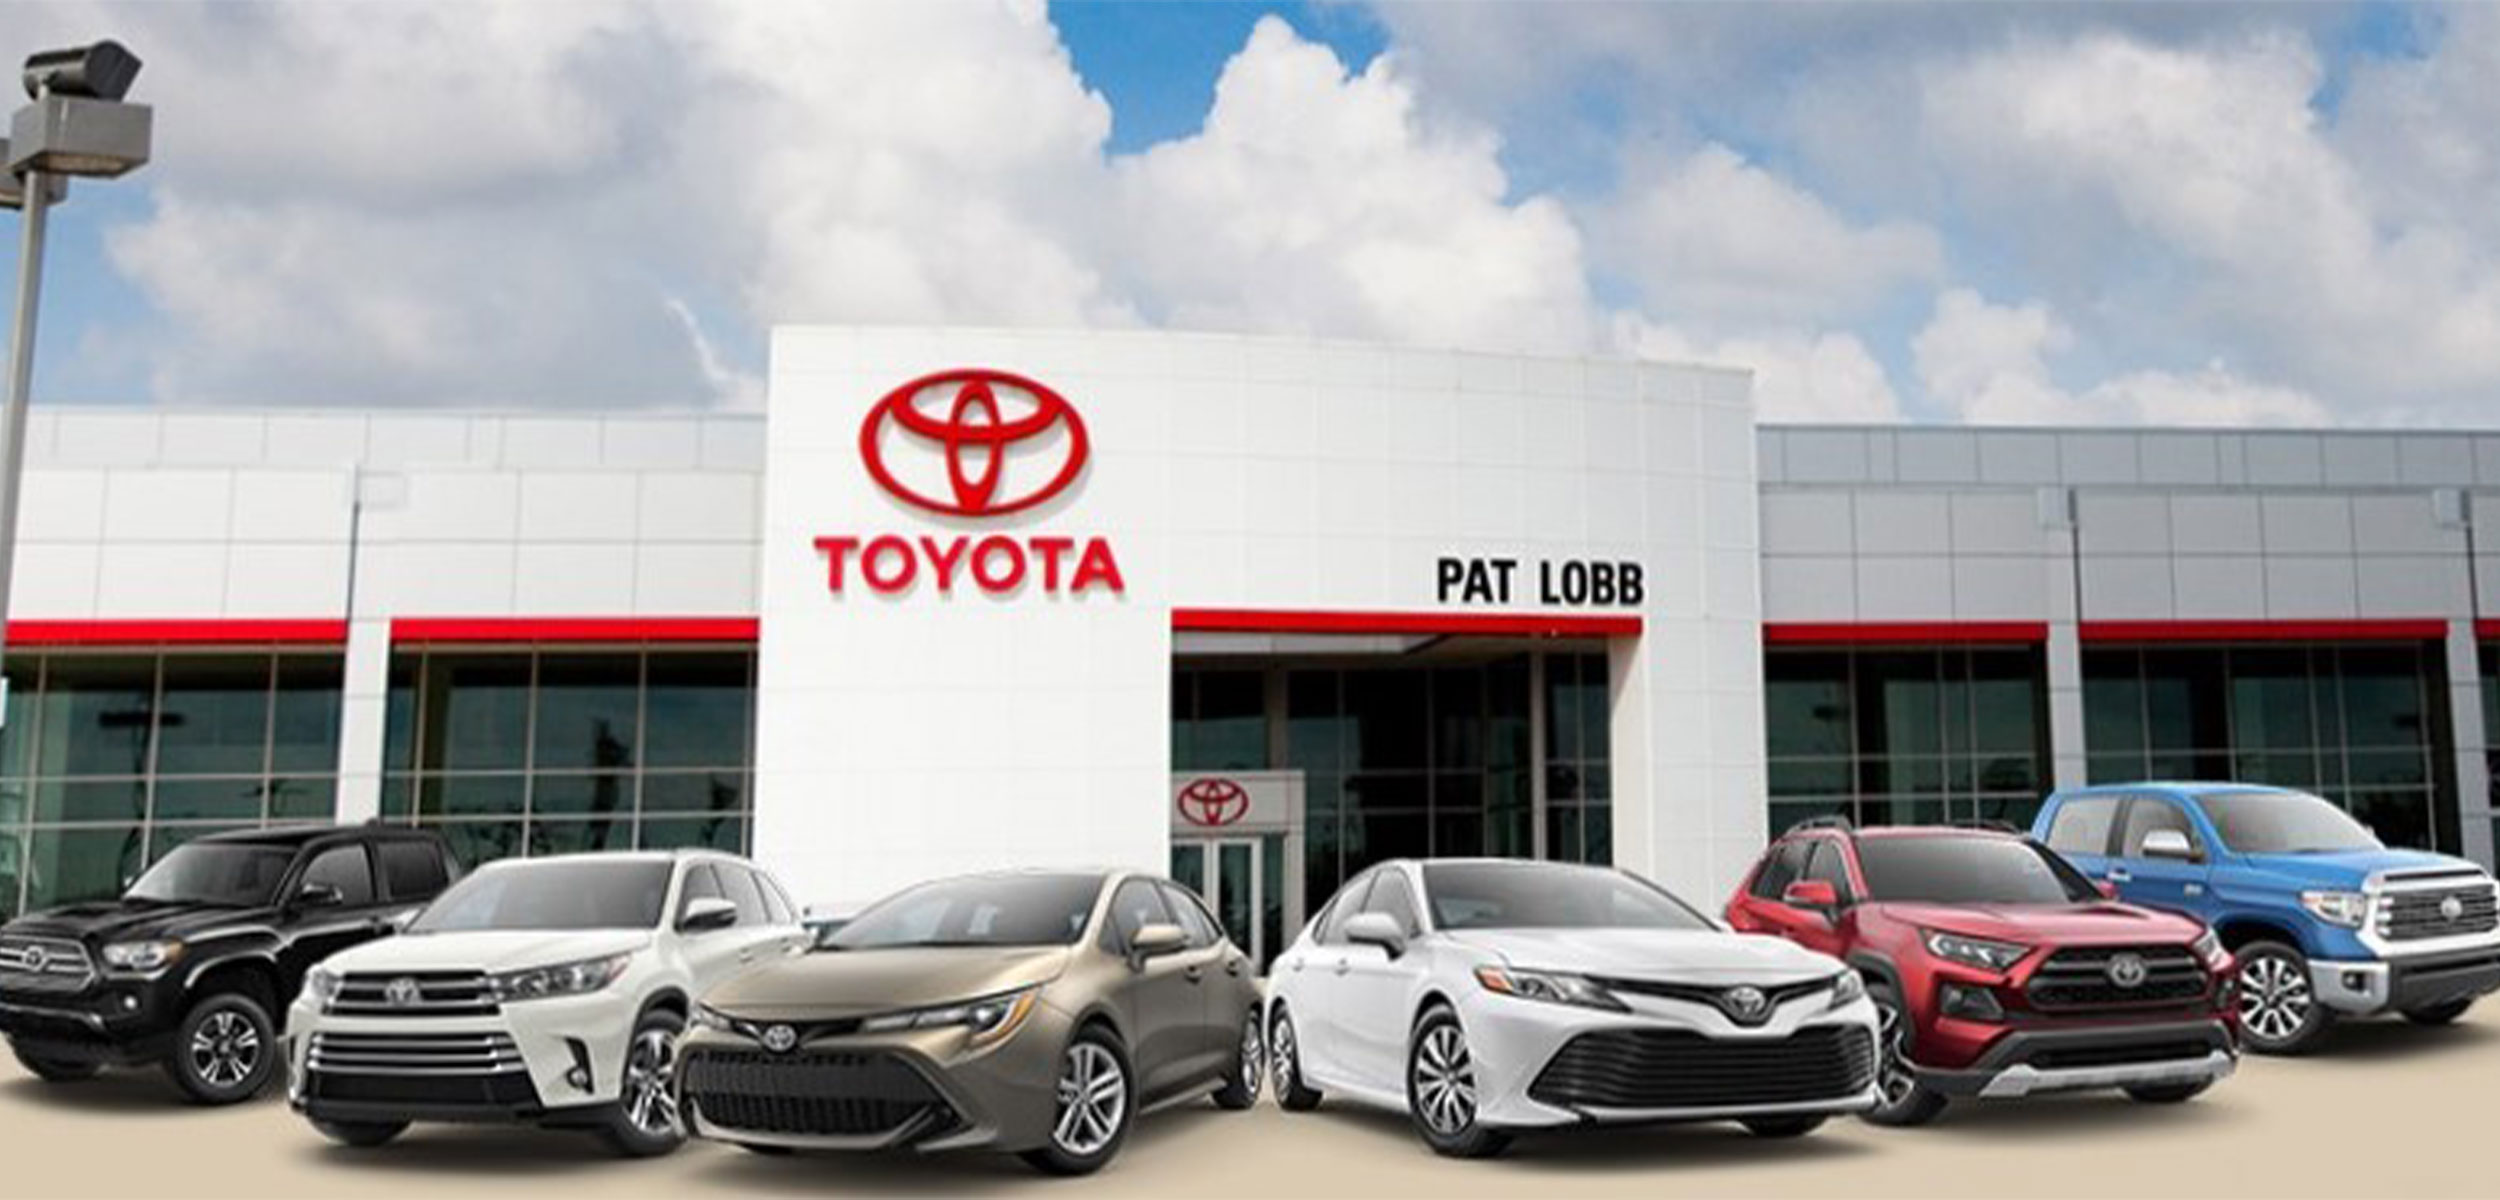 Toyota Dealerships Dfw >> Toyota Dealership In Mckinney Tx Serving Plano Dallas Military